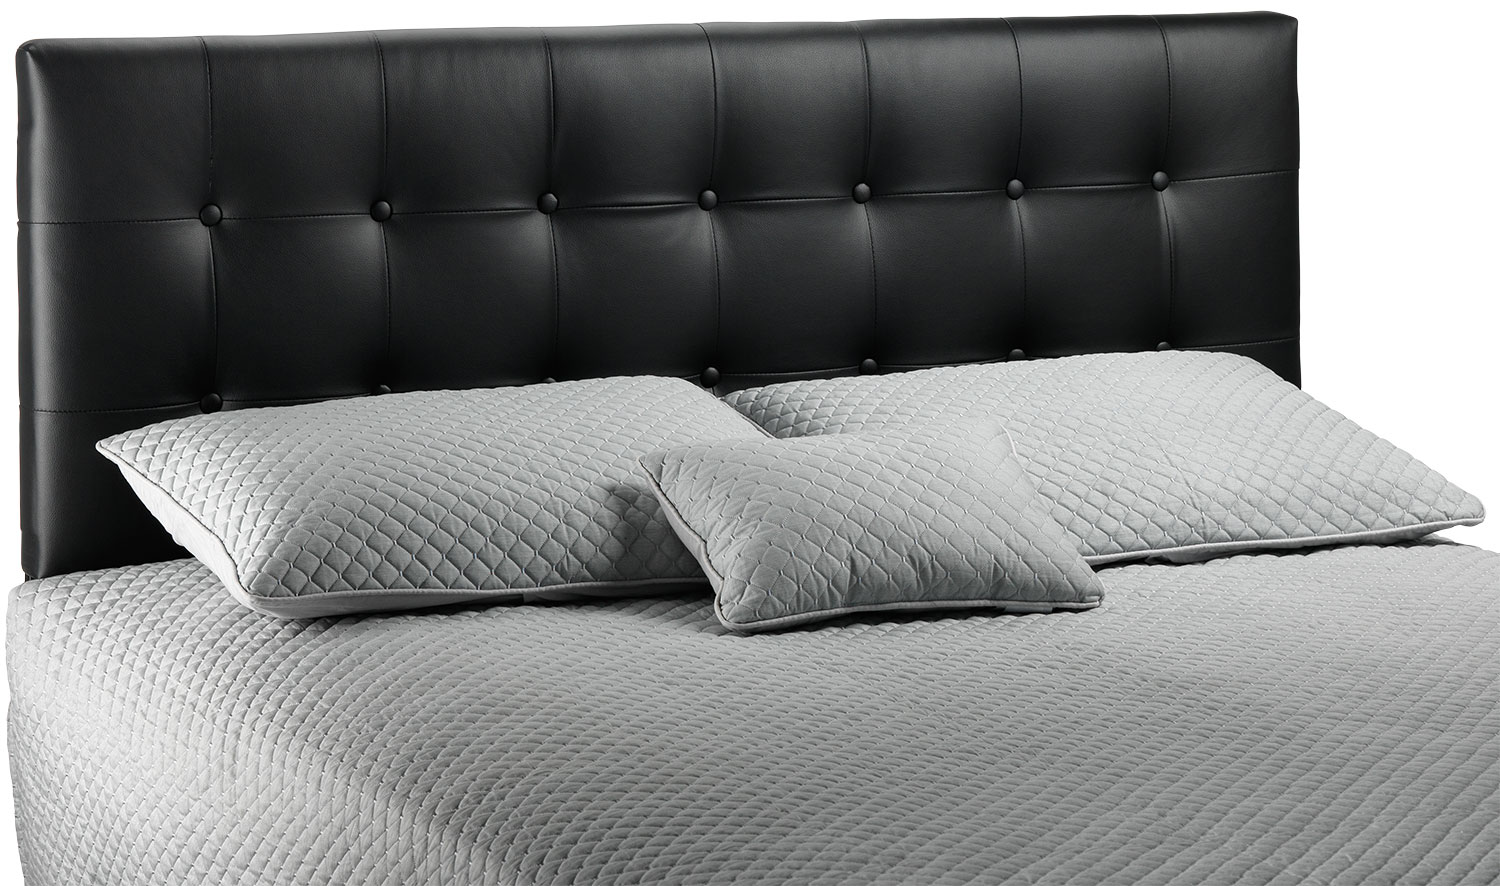 Bedroom Furniture - Lombardi King Headboard - Black